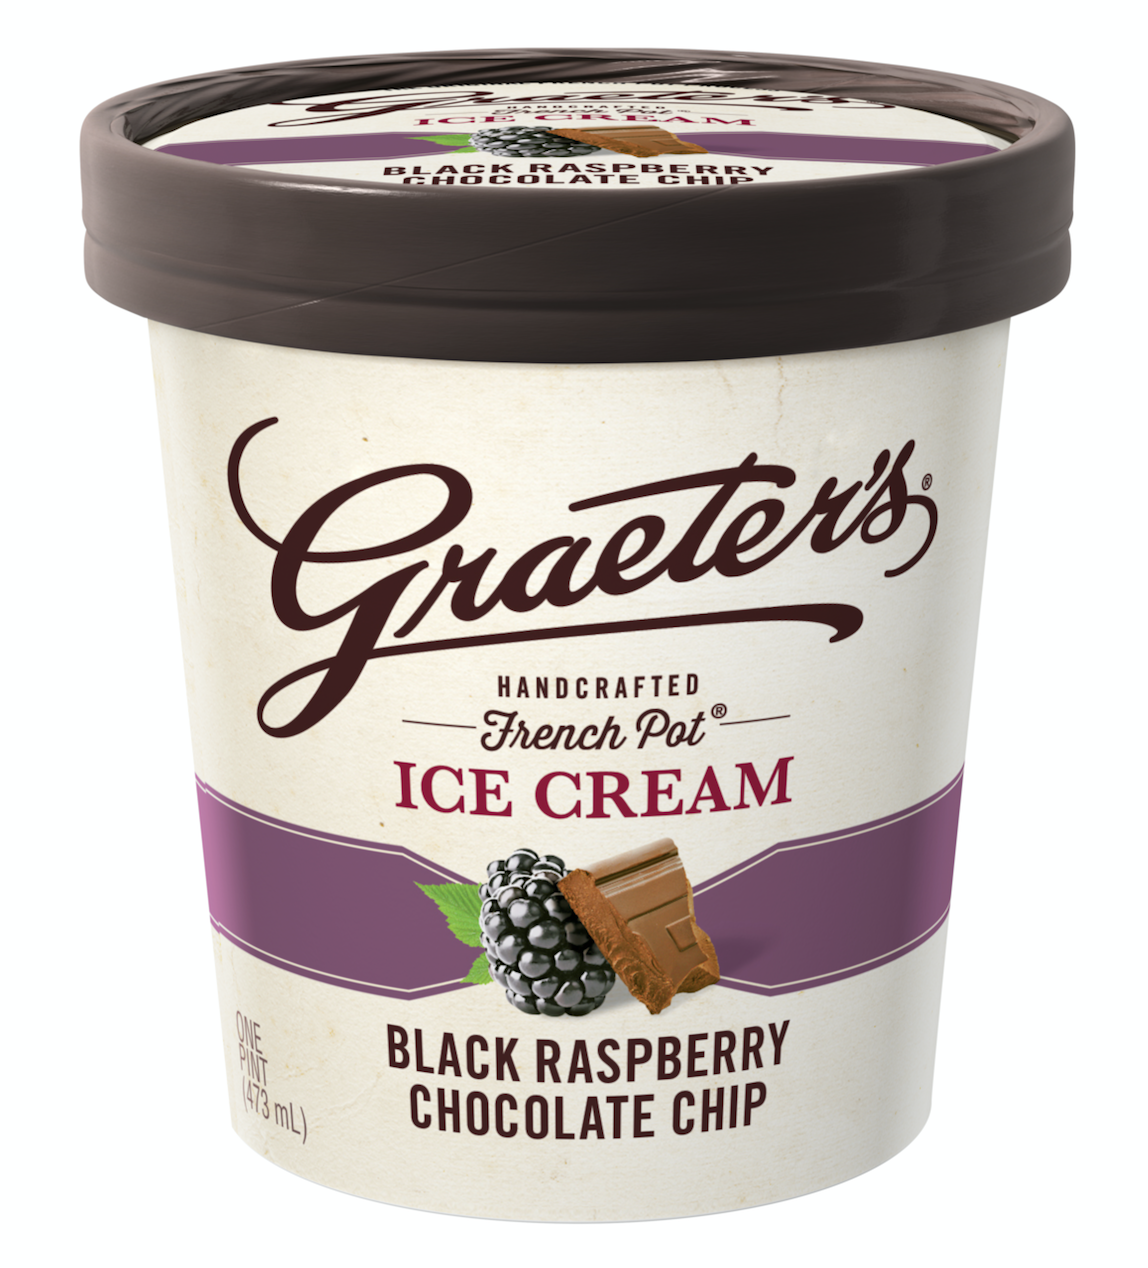 Graeter's Ice Cream: Handcrafted French Pot